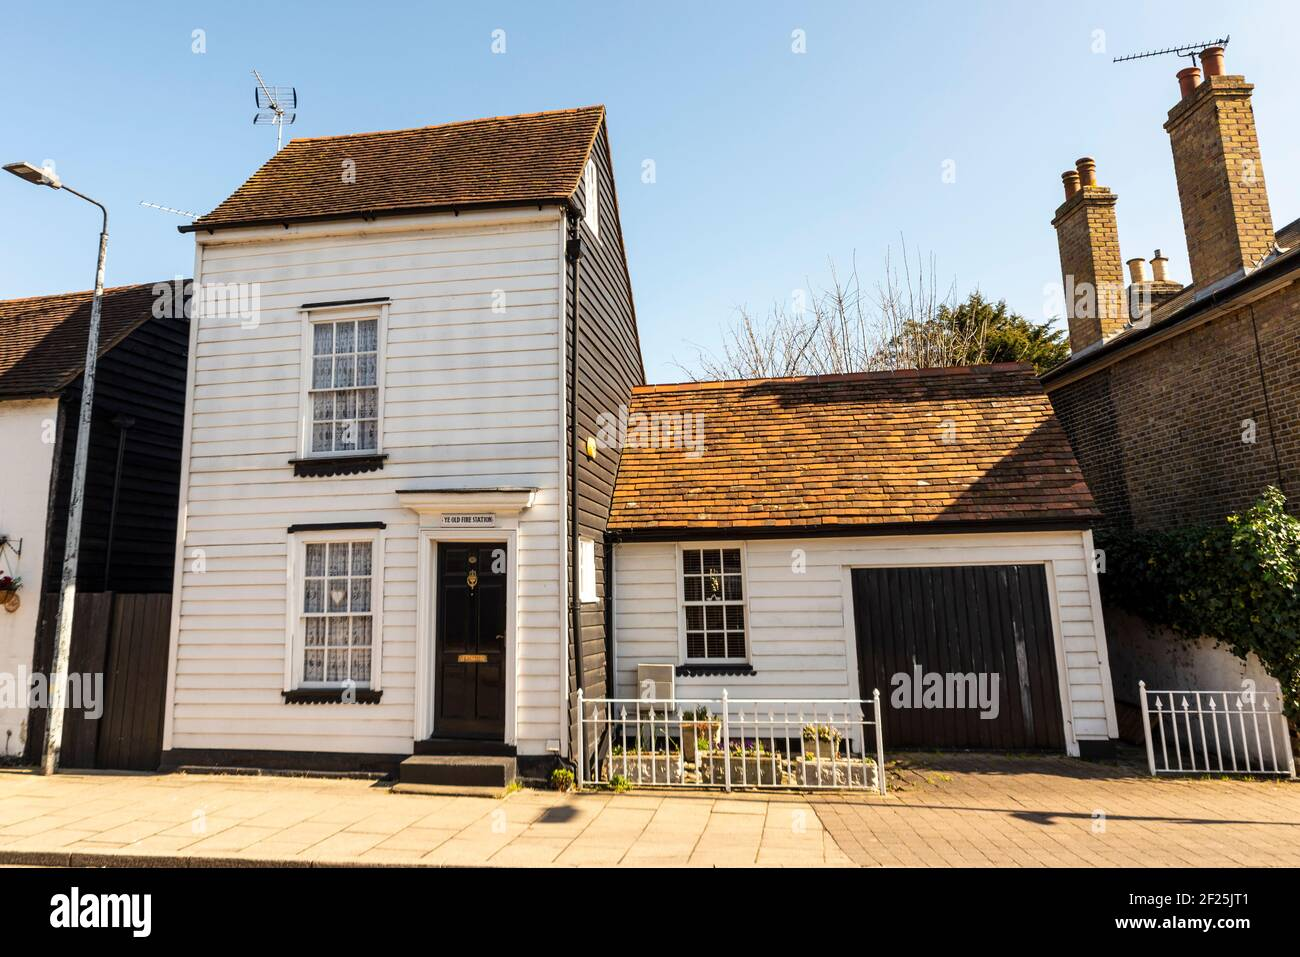 Ye Old Fire Station in North Road, Rochford, Essex, UK. C18 with later alterations. Timber framed and weatherboarded. Grade II listed building Stock Photo